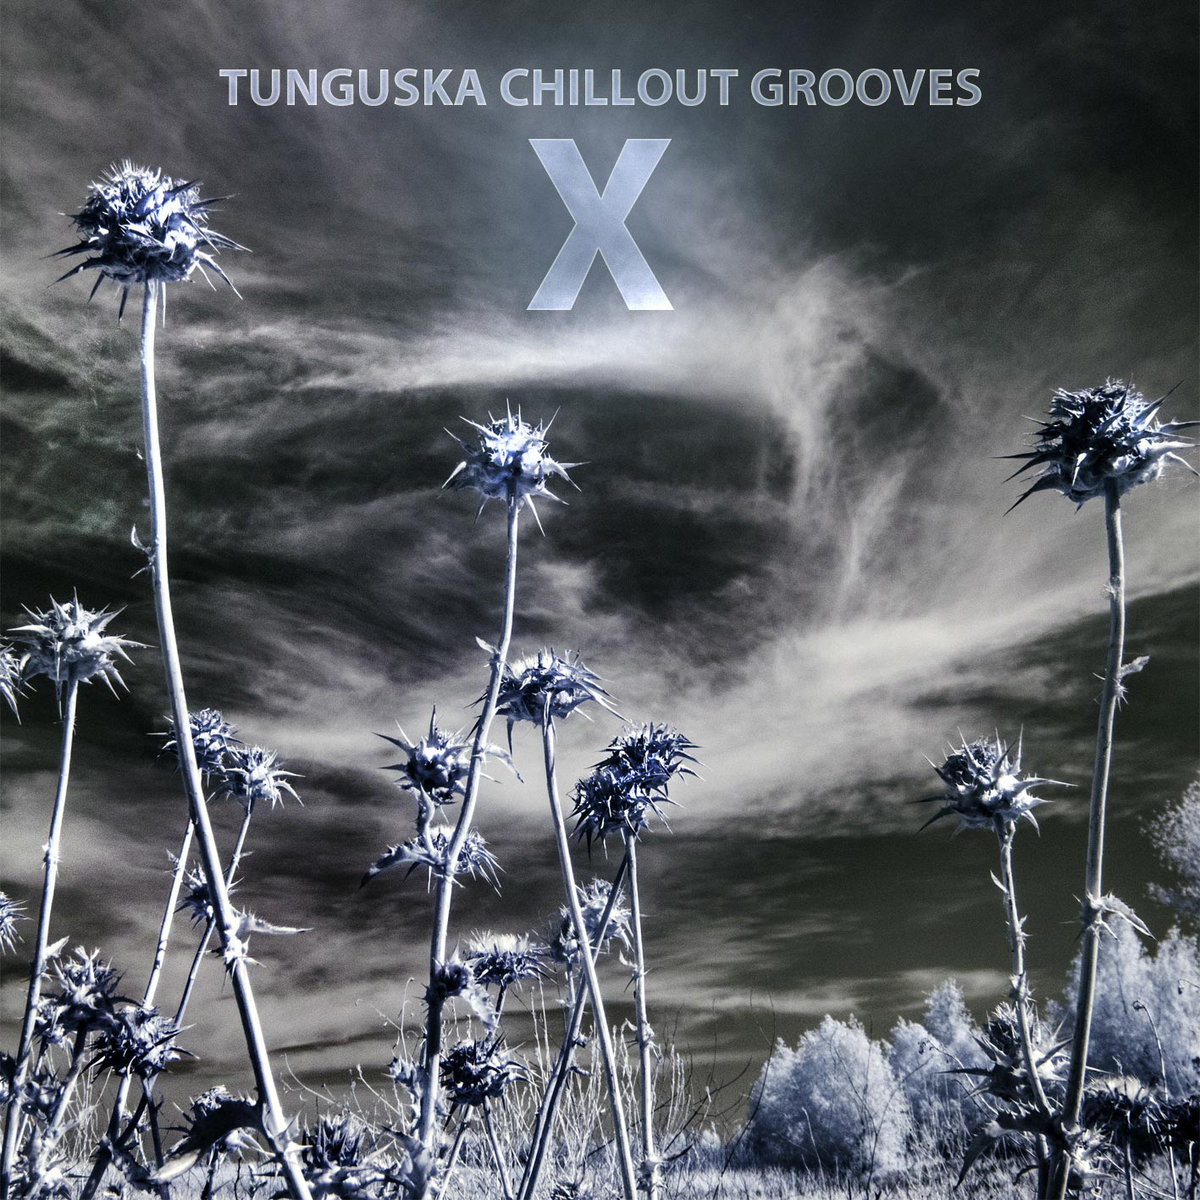 Aleksey Chistilin - A Leaf on the Wind @ 'Tunguska Chillout Grooves - Volume 10' album (electronic, ambient)